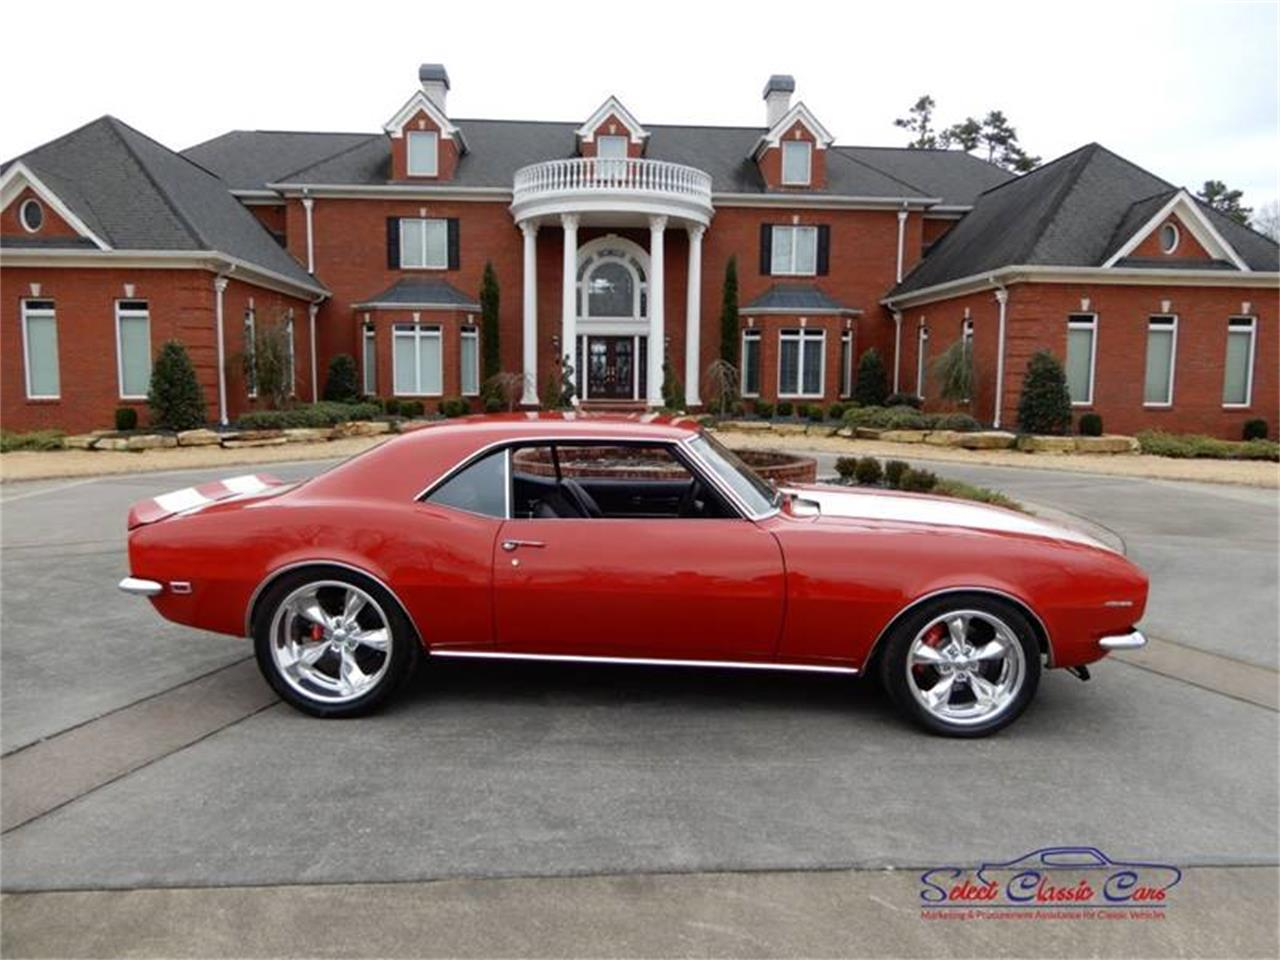 Large Picture of Classic '68 Camaro - $69,500.00 Offered by Select Classic Cars - QQ04